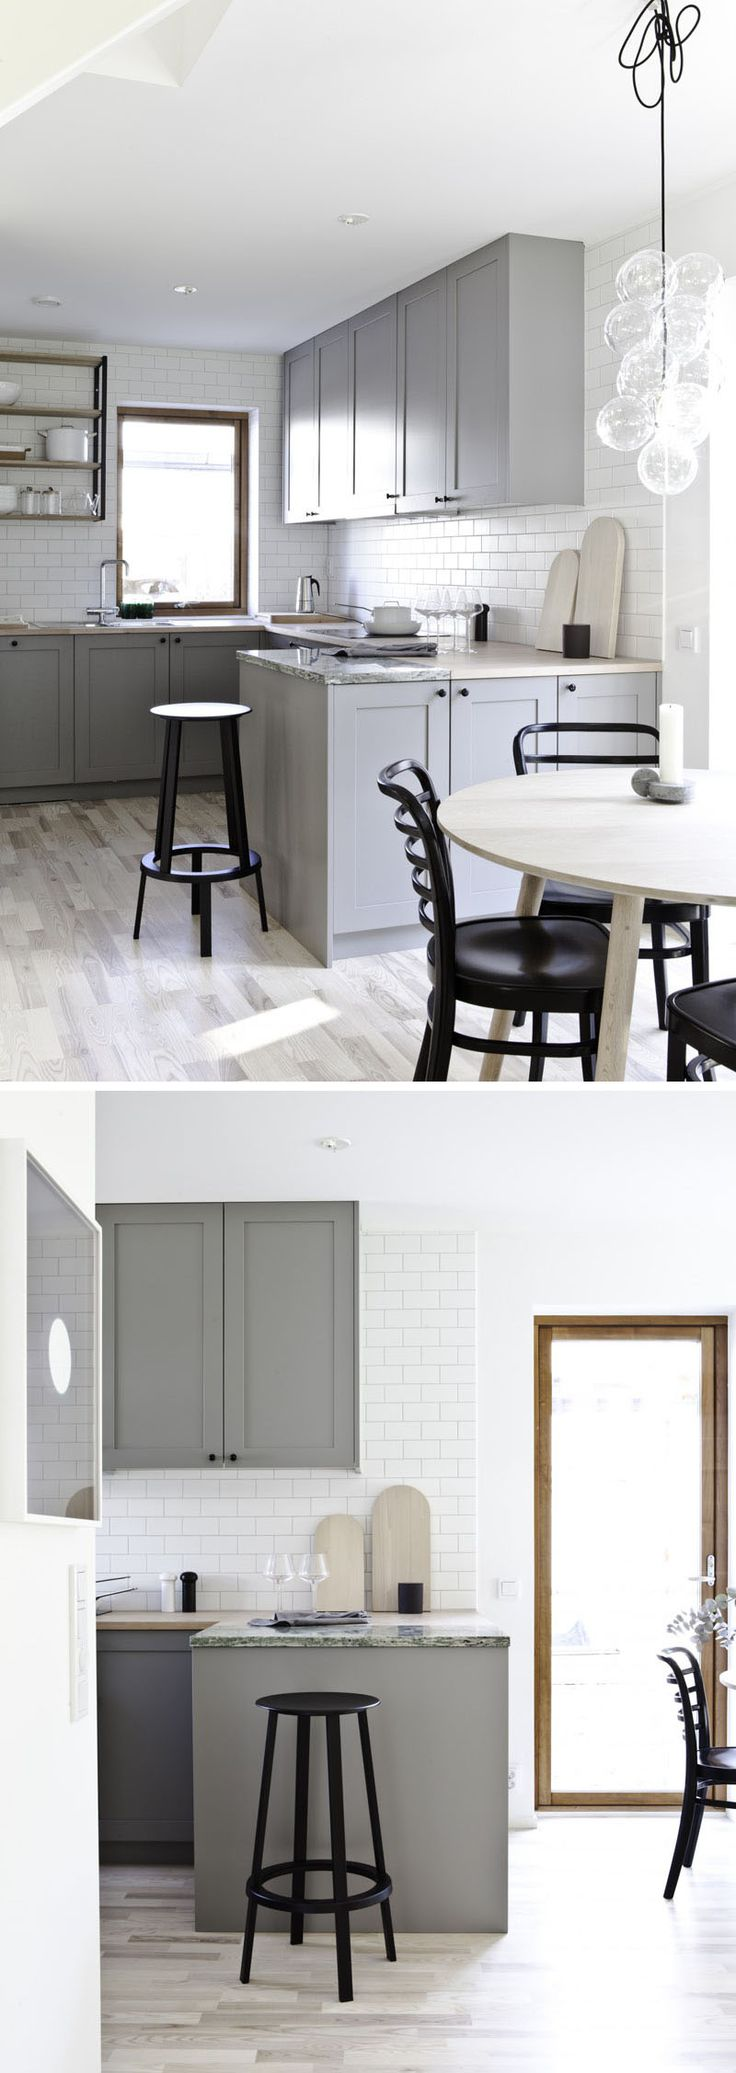 1000 ideas about light gray cabinets on pinterest gray kitchen cabinets grey cabinets and. Black Bedroom Furniture Sets. Home Design Ideas